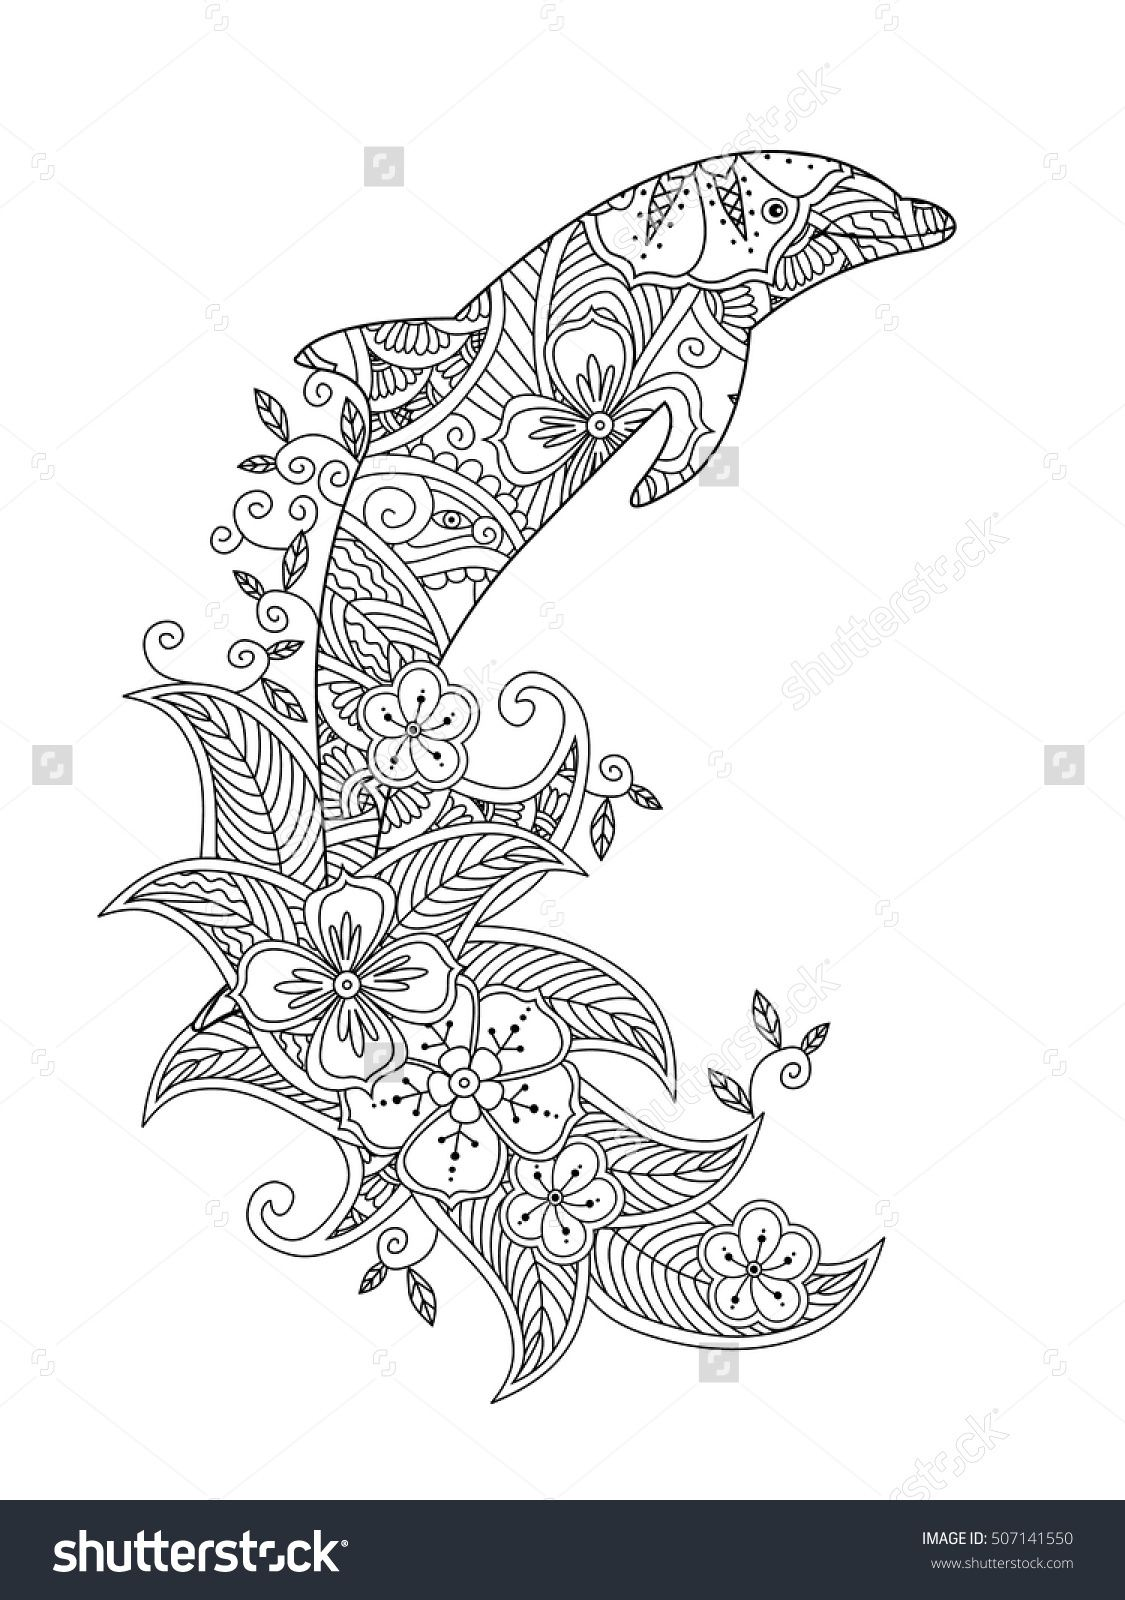 Coloring Page With Ornate Jumping Dolphin On Floral Waves